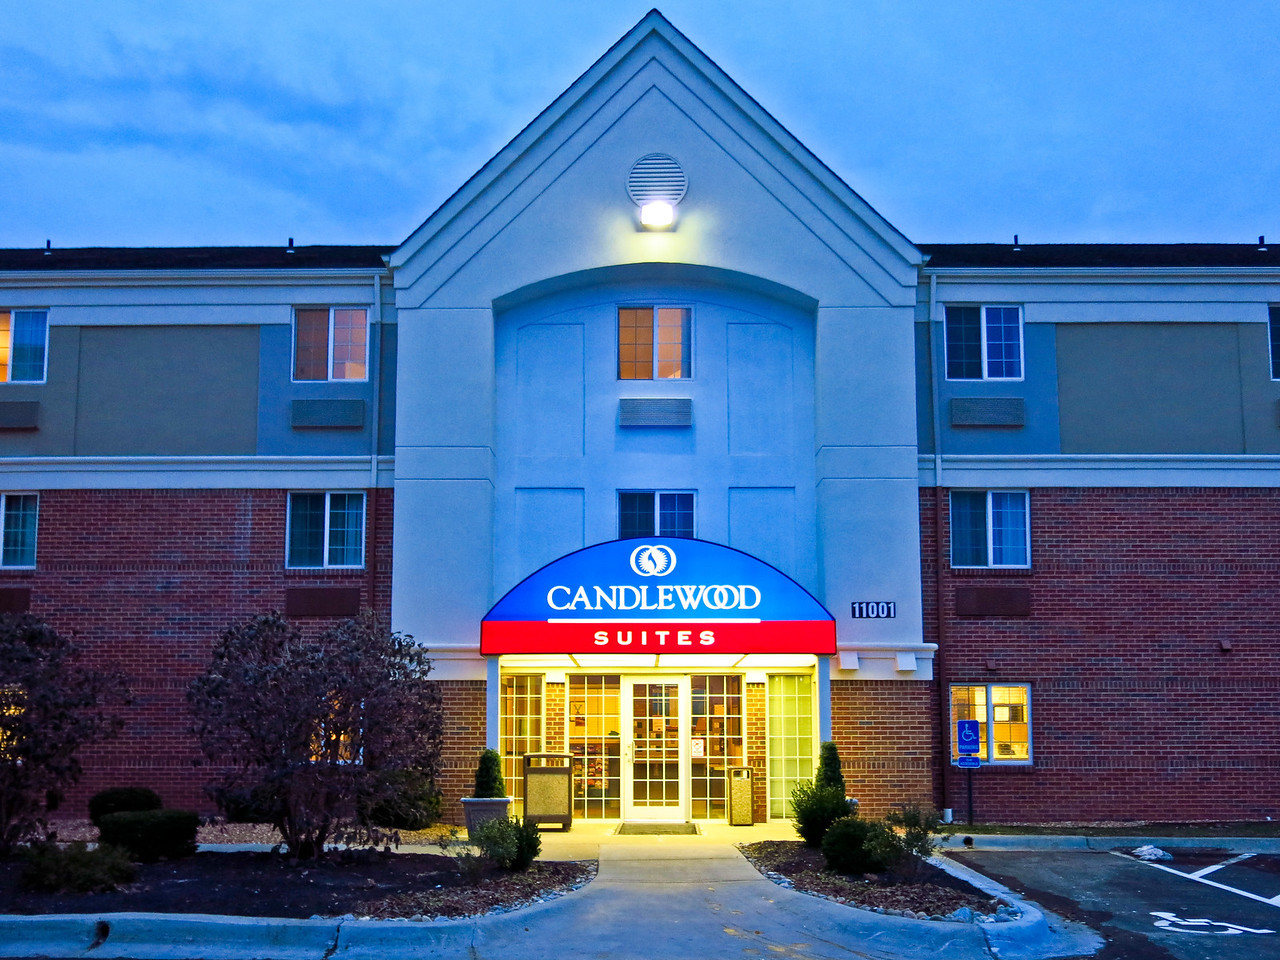 Nathan is staying at the Candlewood Suites in Overland Park.  It is about 0.5 mile from the building where he has classes at JCCC.